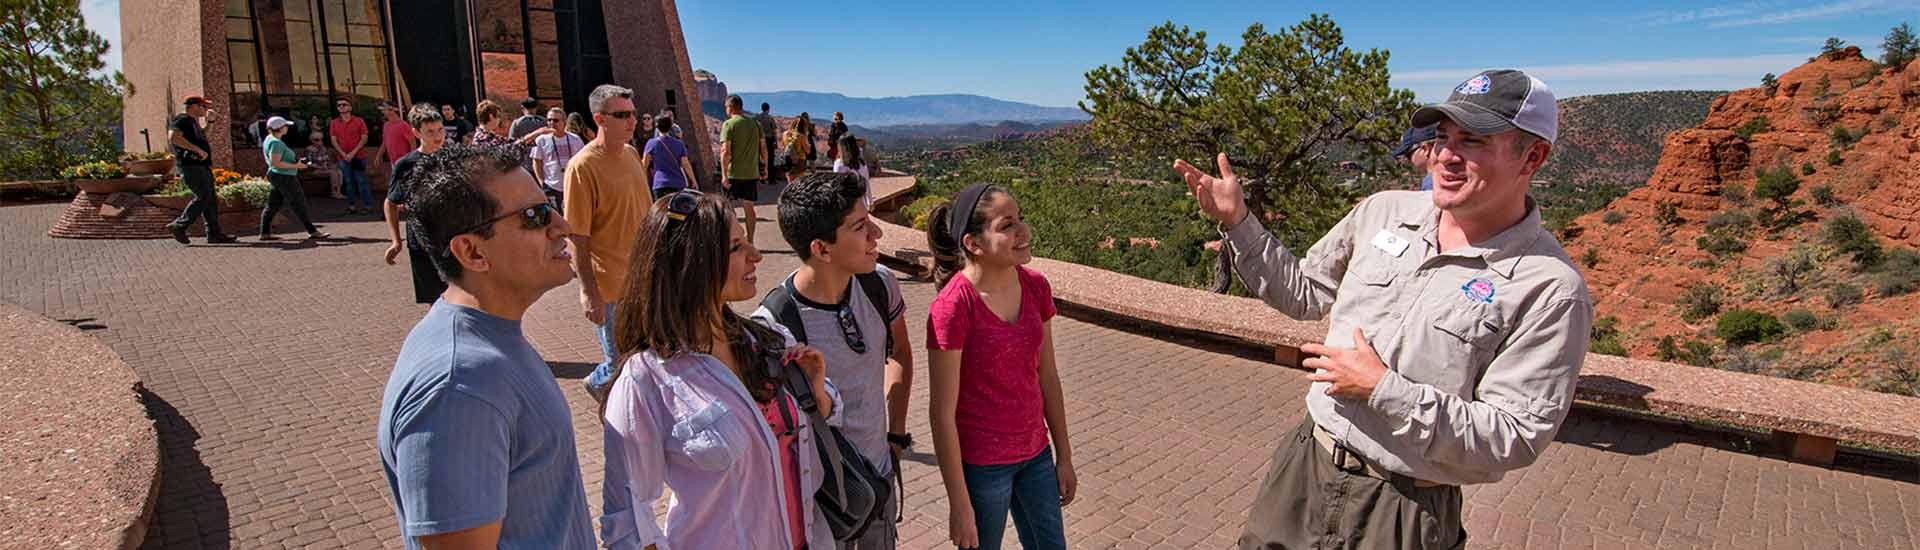 Pink Jeep Tour guide talking with guests on the Sedona 360 Tour at the Chapel of the Holy Cross